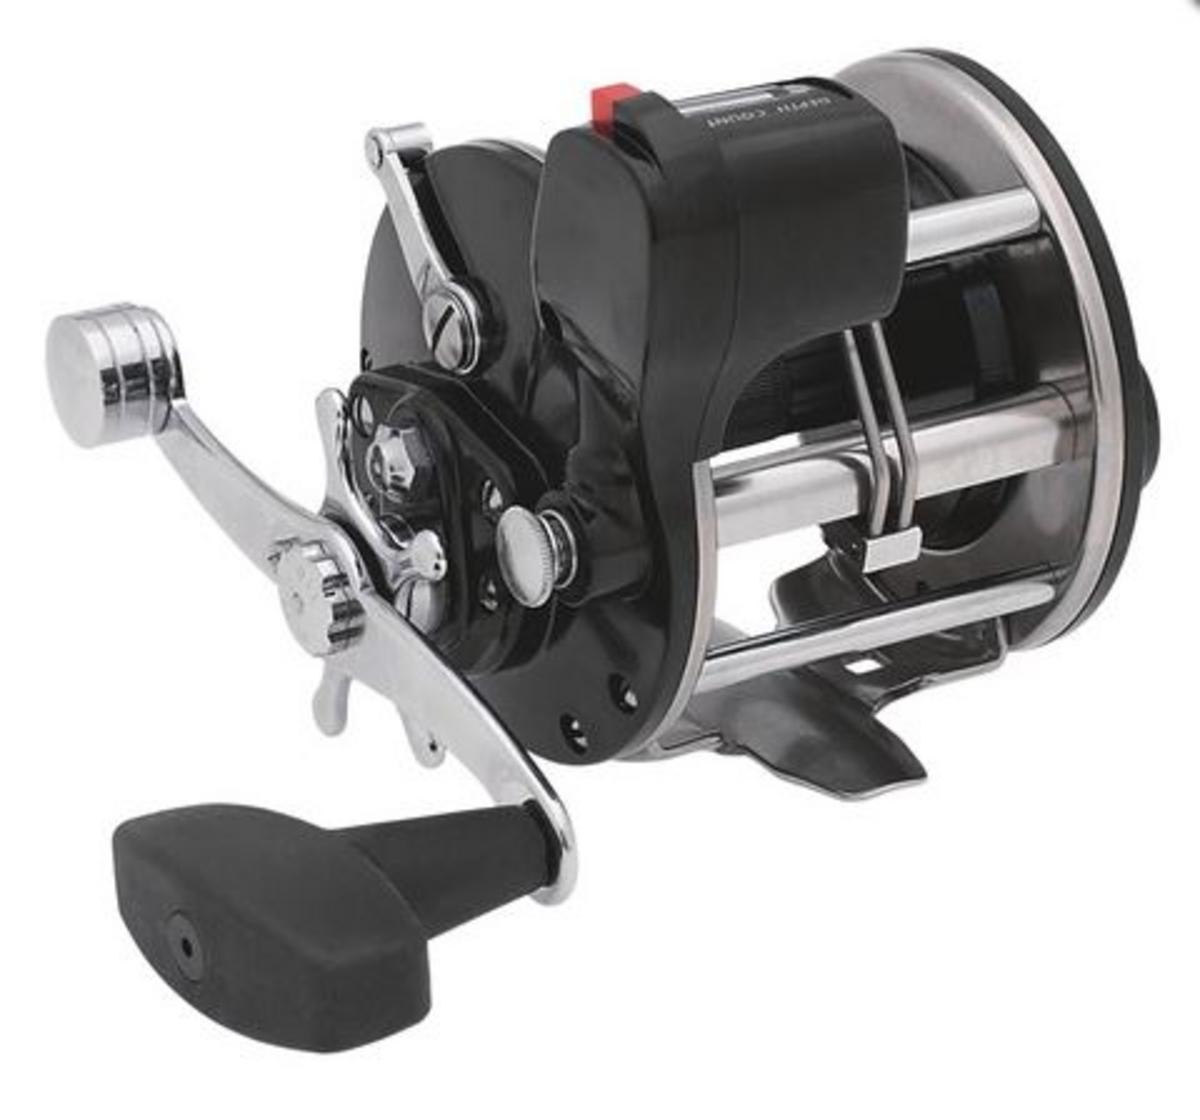 Penn 209LC General Purpose Level Wind Line Counter Multiplier Sea Fishing Reel